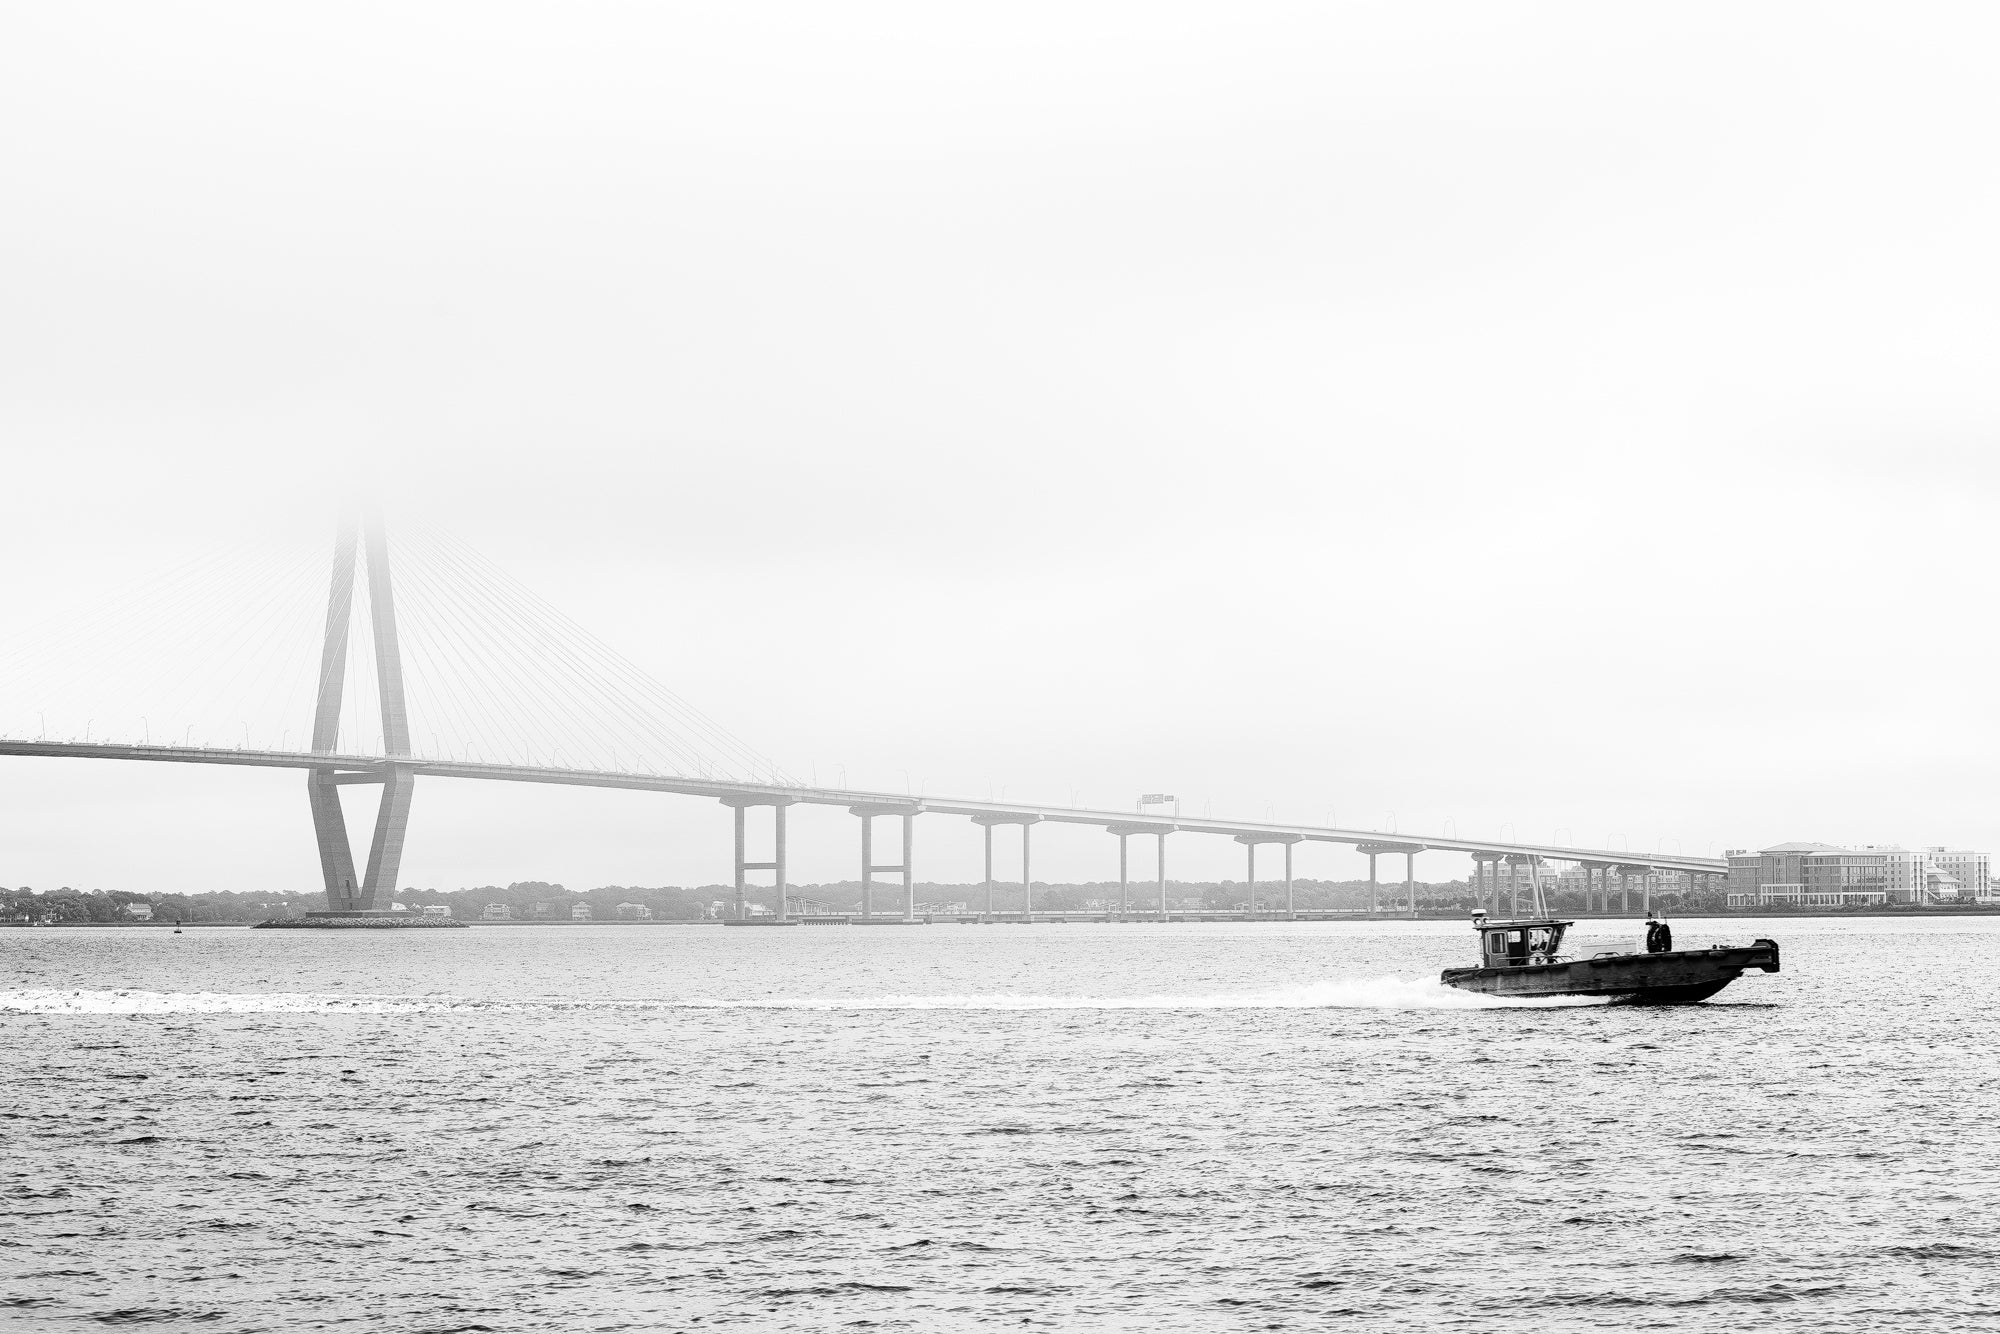 Foggy Morning on Charleston's Cooper River (Ravenel Bridge) - Black and White Photograph by Keith Dotson. Click to buy a print.